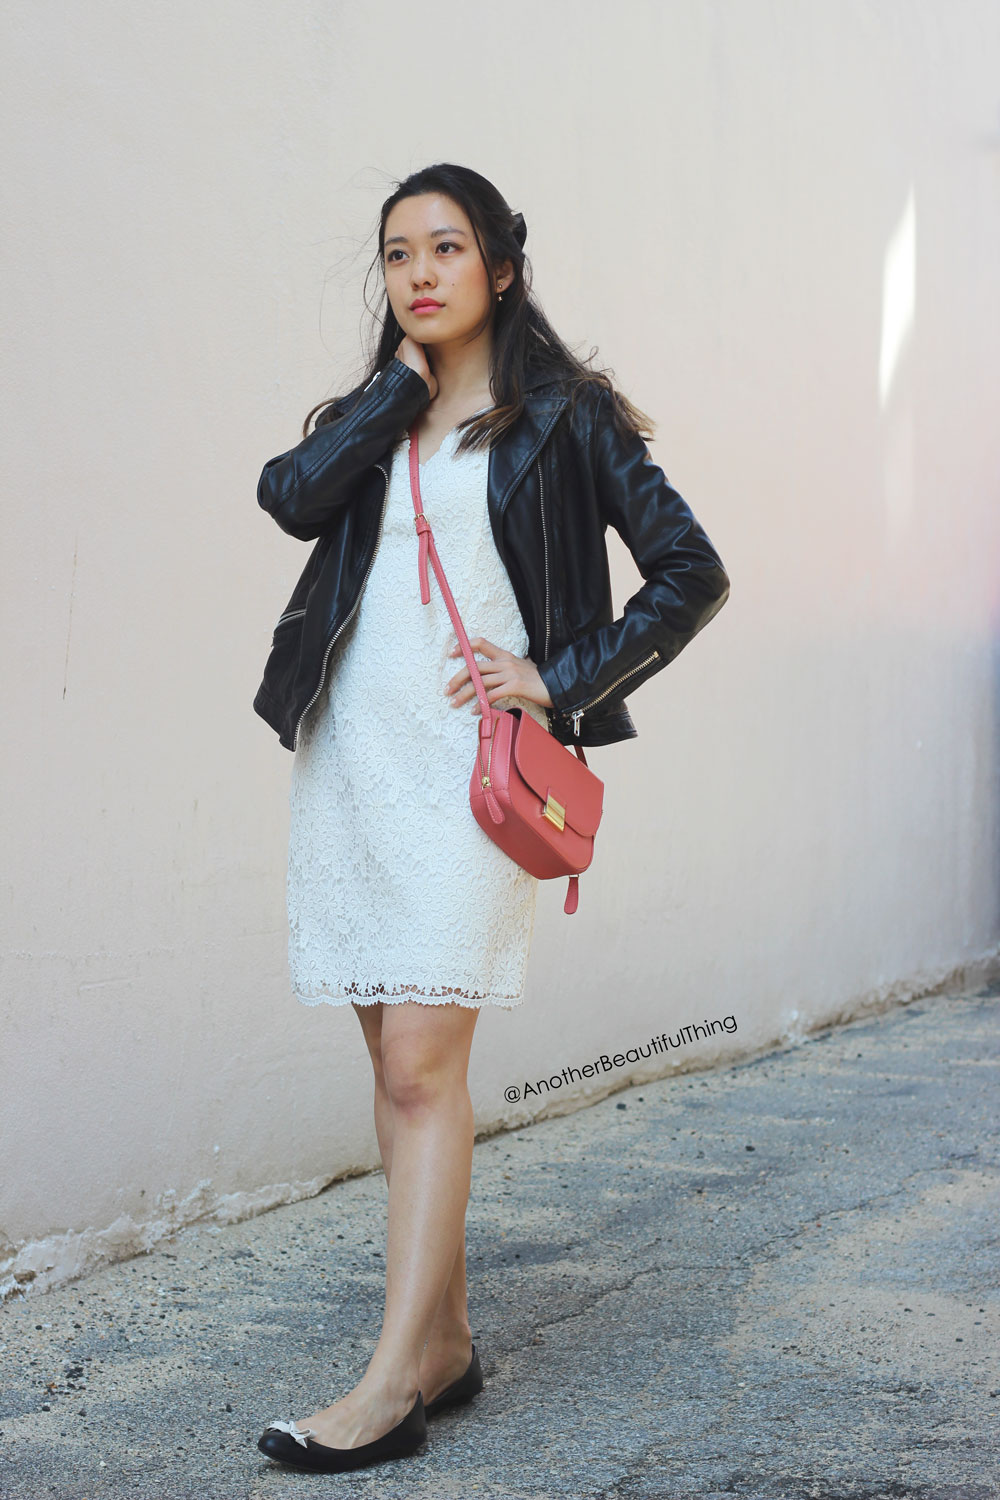 Ann Taylor Scallop Lace White Dress and faux leather jacket